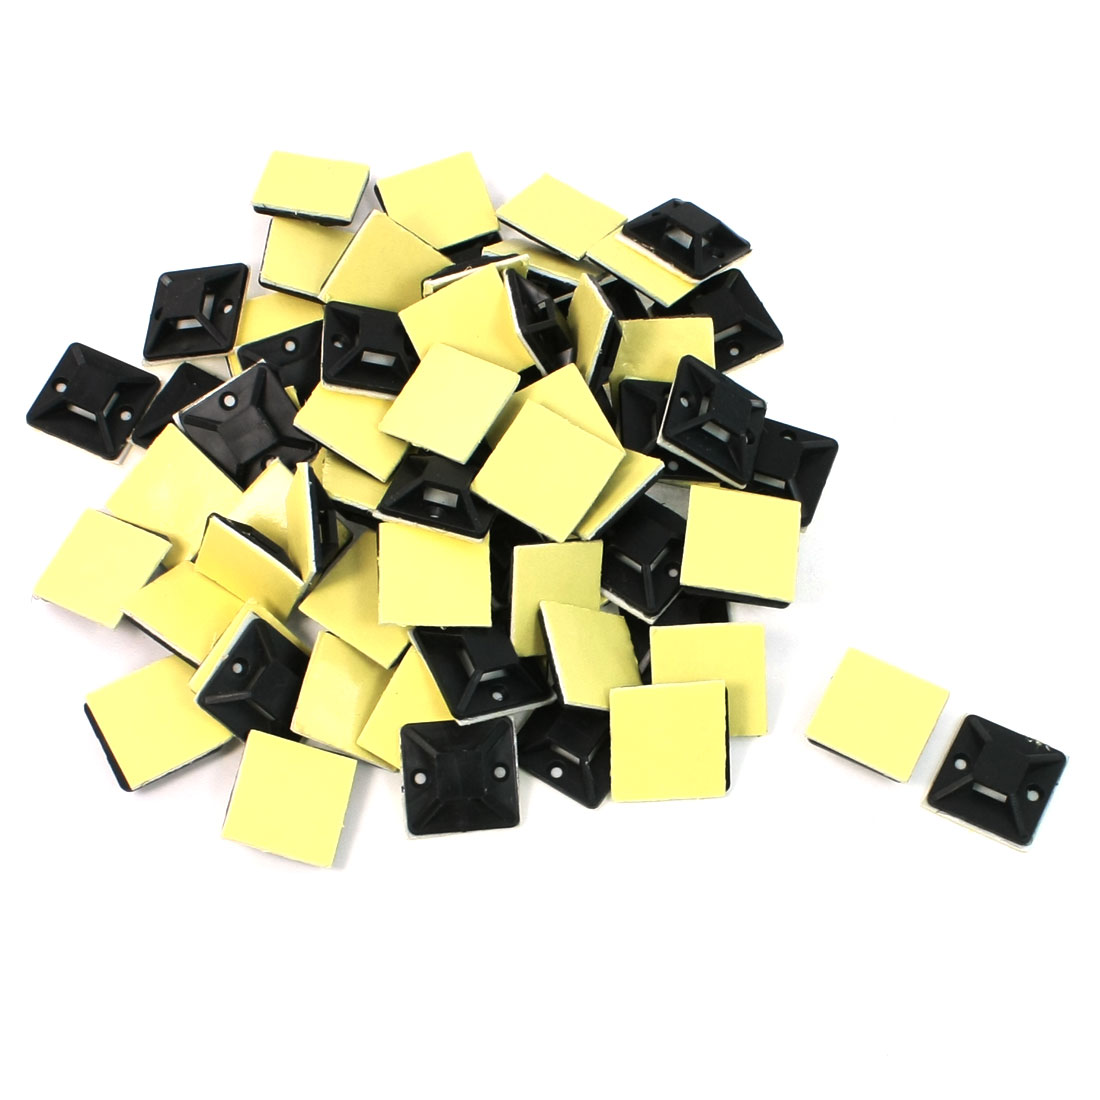 100-Pcs-Black-Plastic-Self-Adhesive-Cable-Tie-Mount-Base-Holder